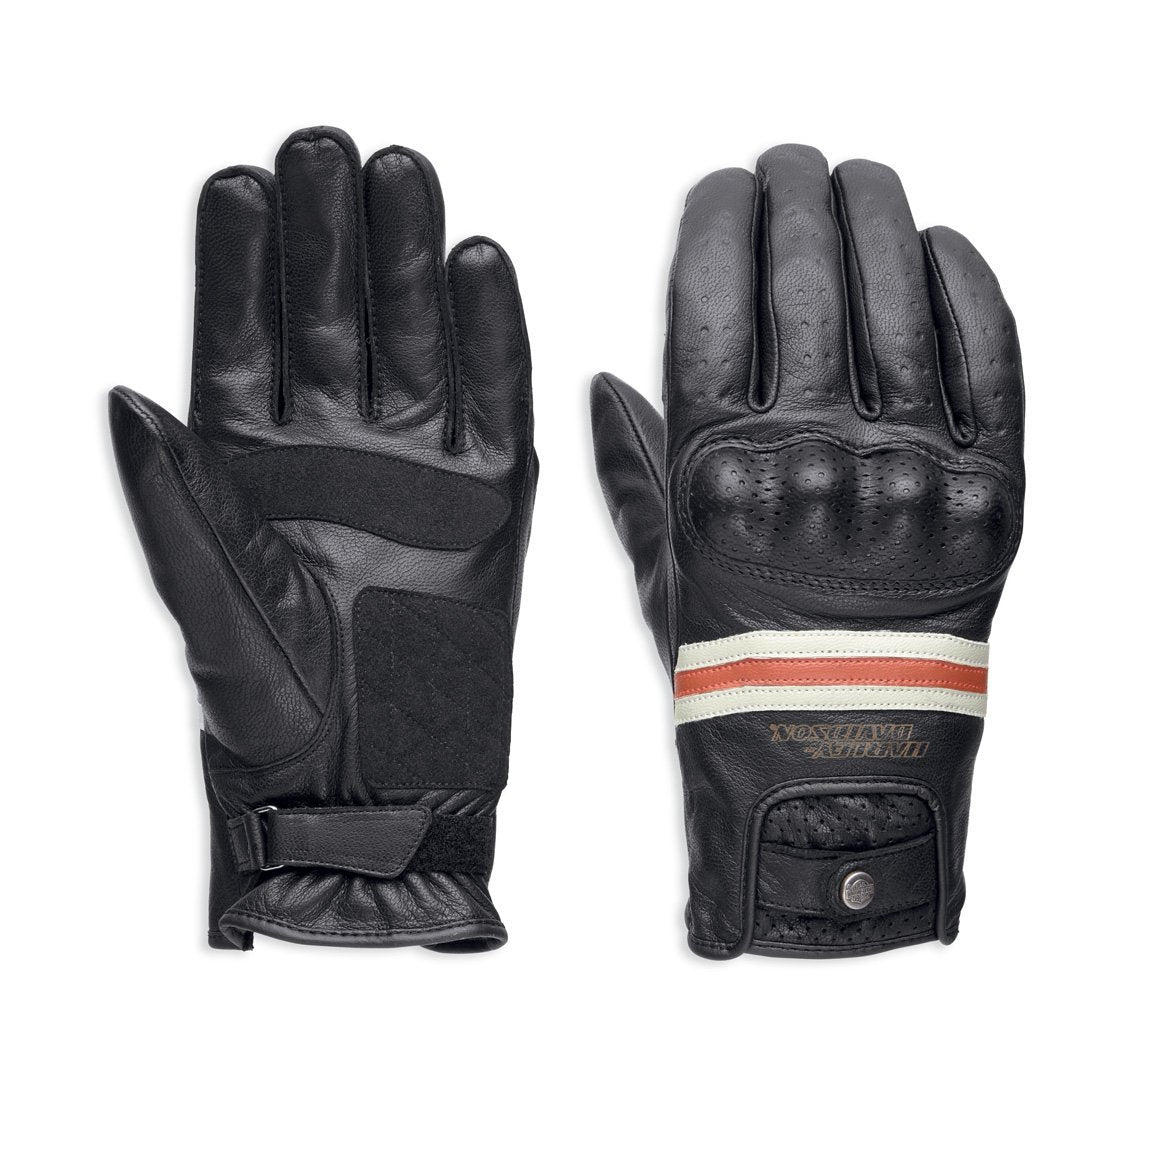 Harley-Davidson® Mens Reaver Leather Gloves - 98178-18Em